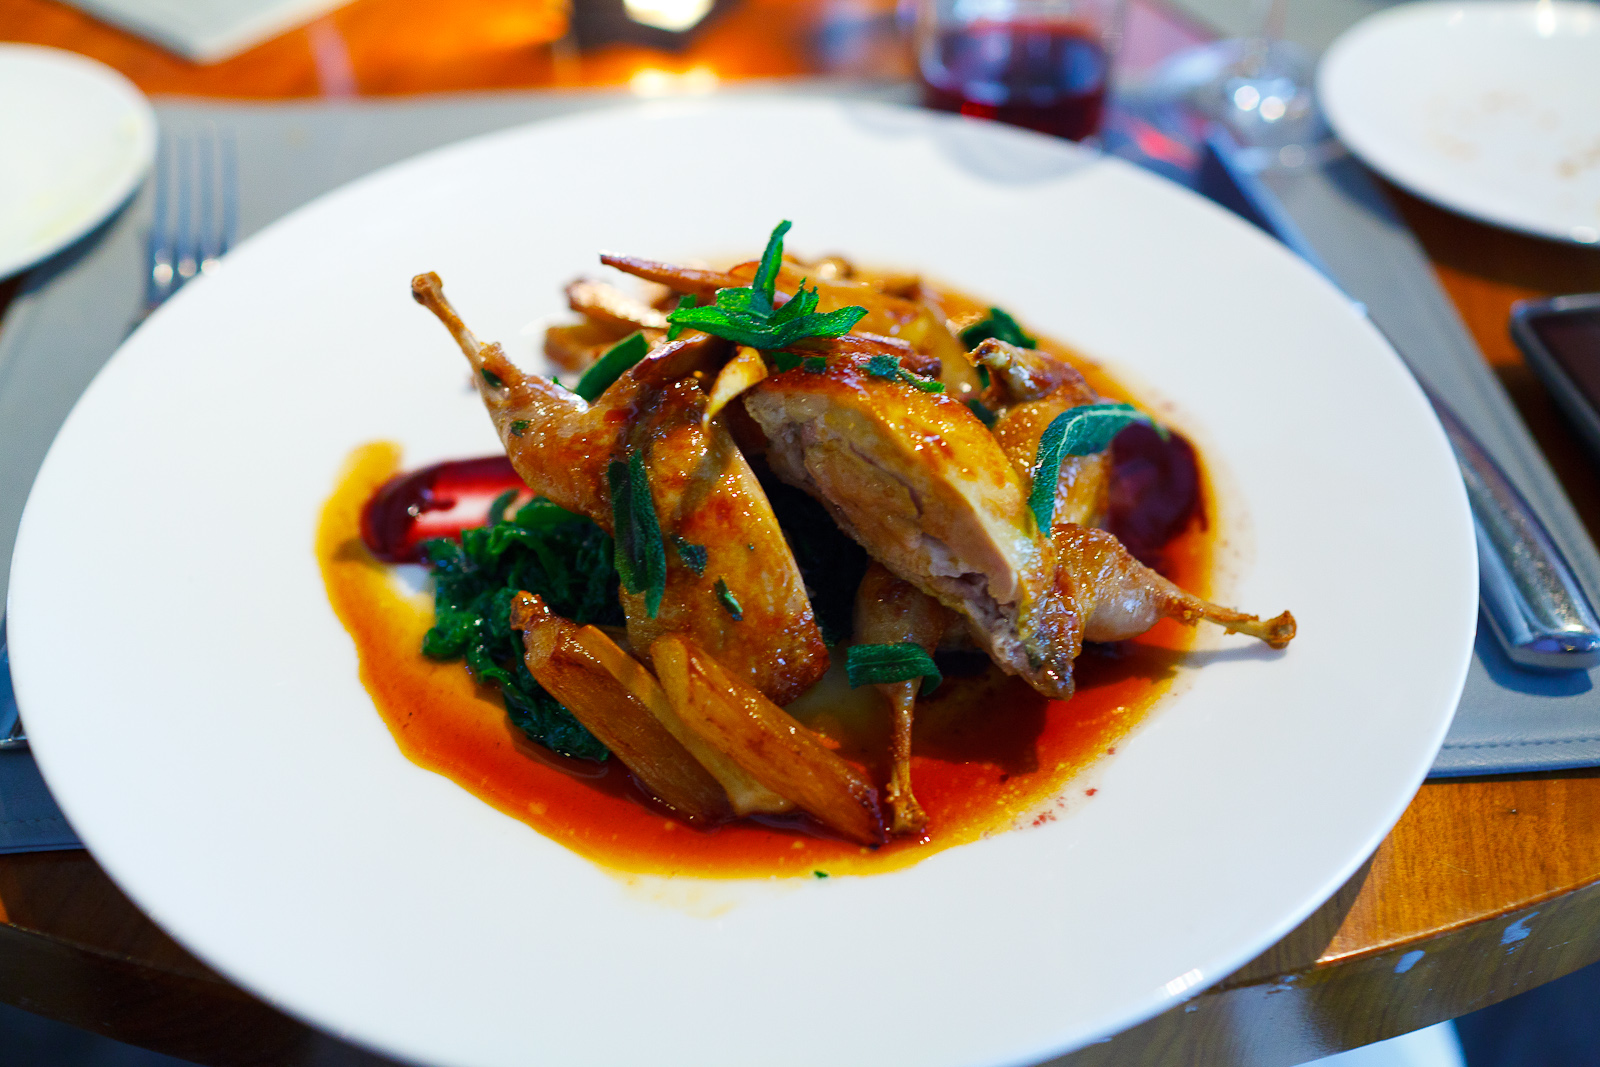 Roasted quail, salsify, concord grapes, mustard greens, chanterelle mushrooms ($29)